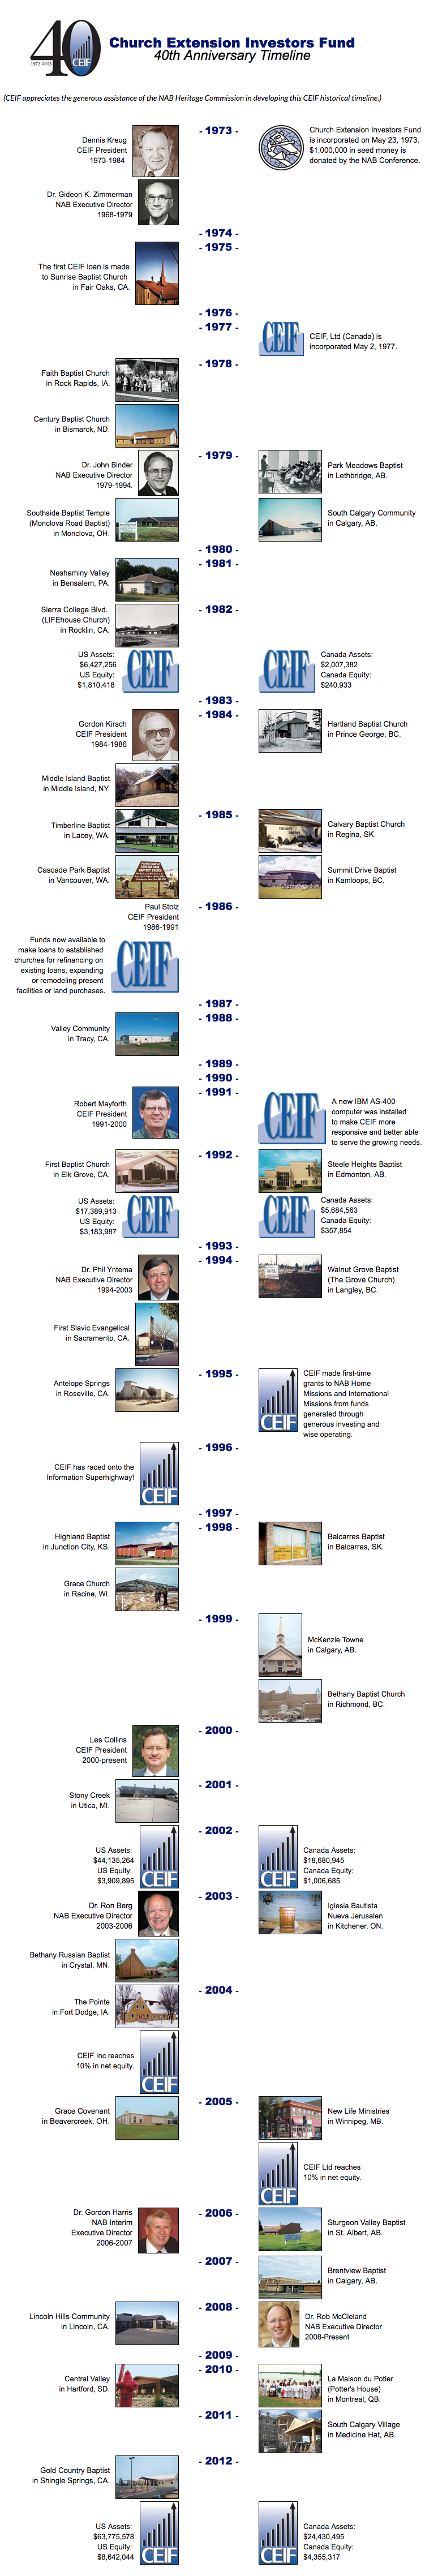 Church Investors Fund Timeline